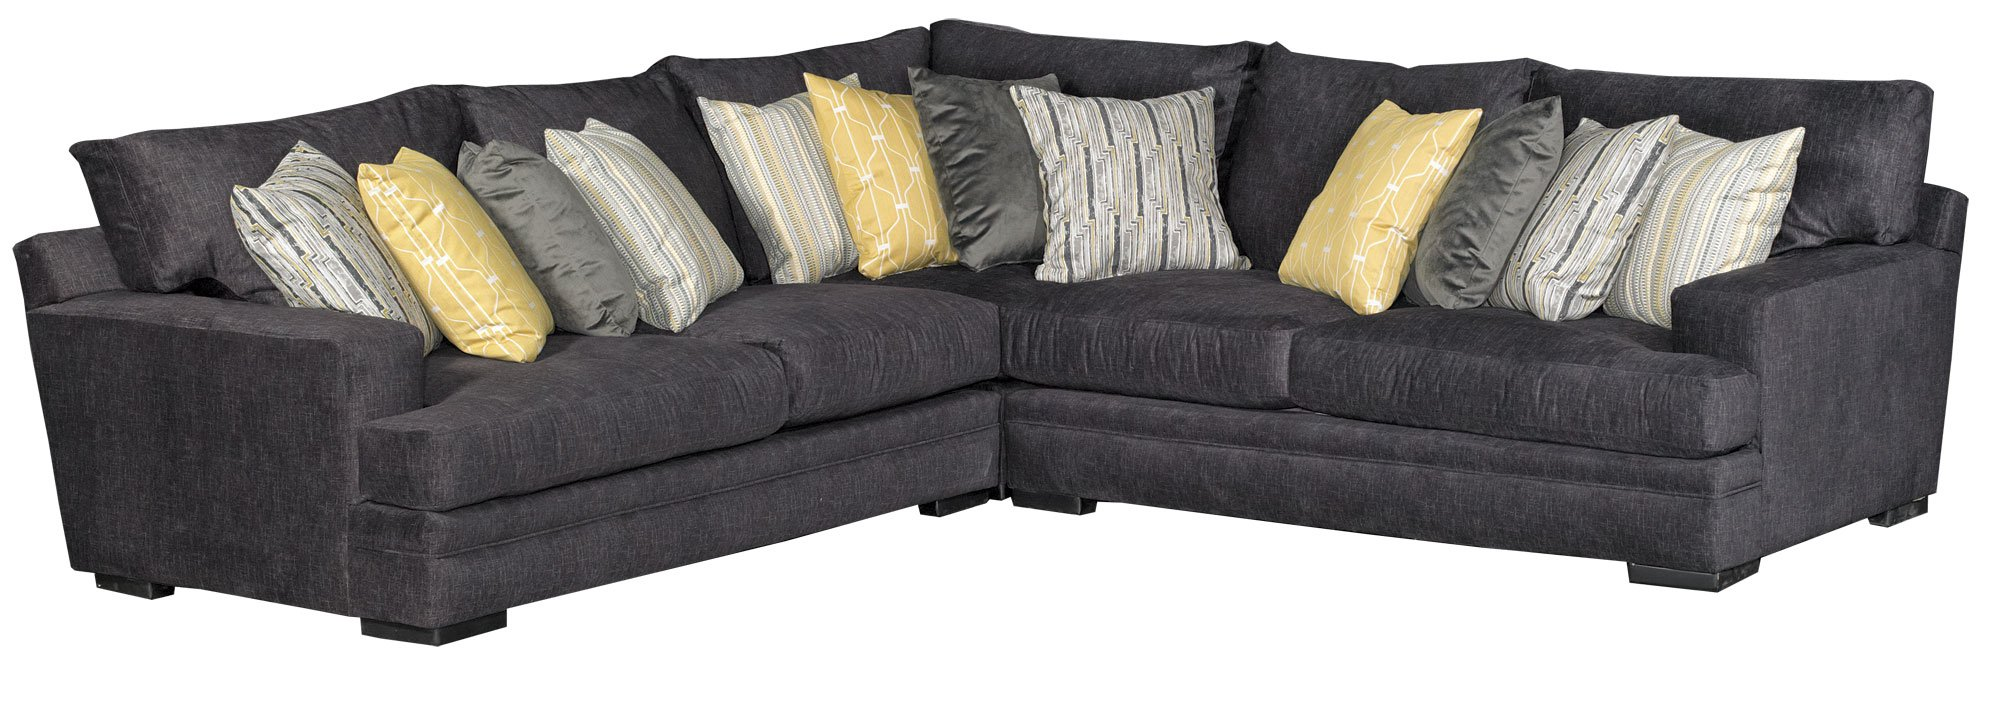 Charcoal Gray Casual Contemporary 3 Piece Sectional  sc 1 st  RC Willey : rc willey sectional - Sectionals, Sofas & Couches